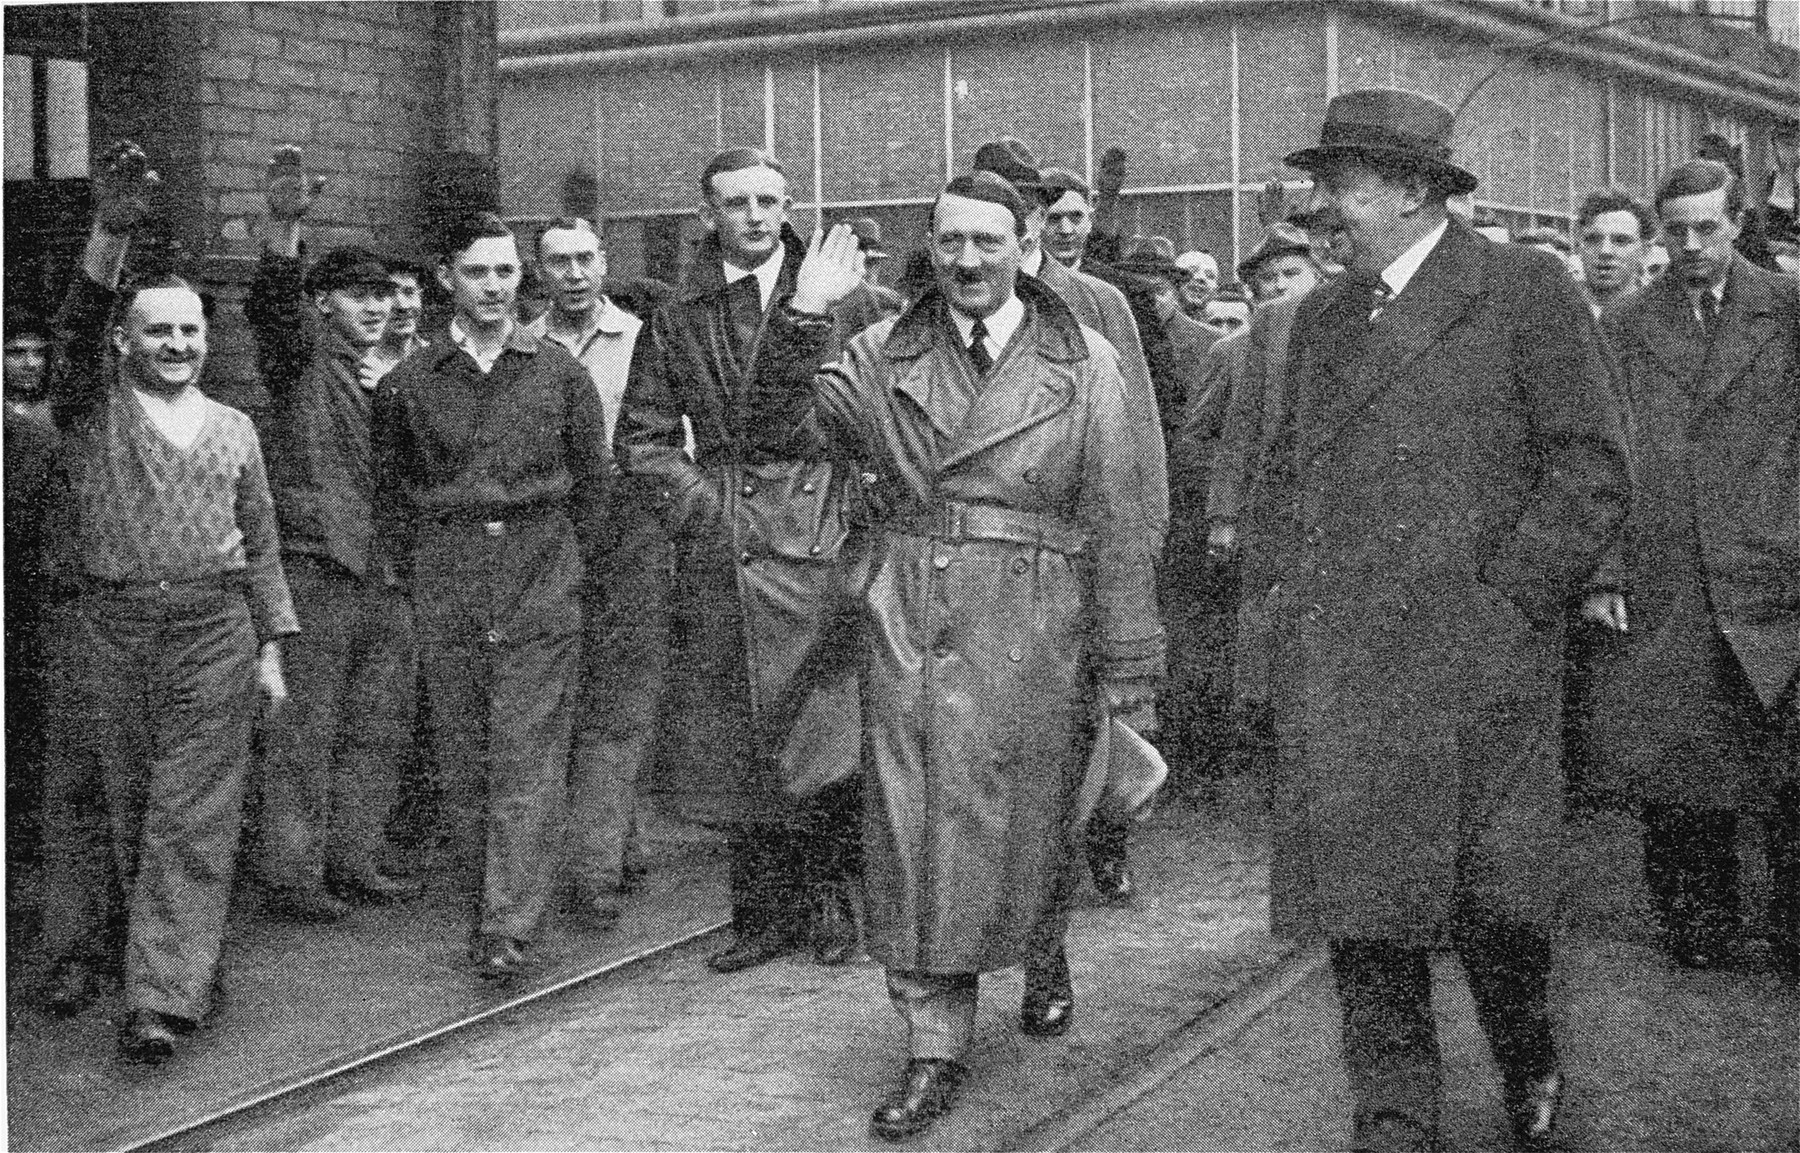 Adolf Hitler salutes a crowd of workers during a tour of industries in Rhineland-Westphalia.